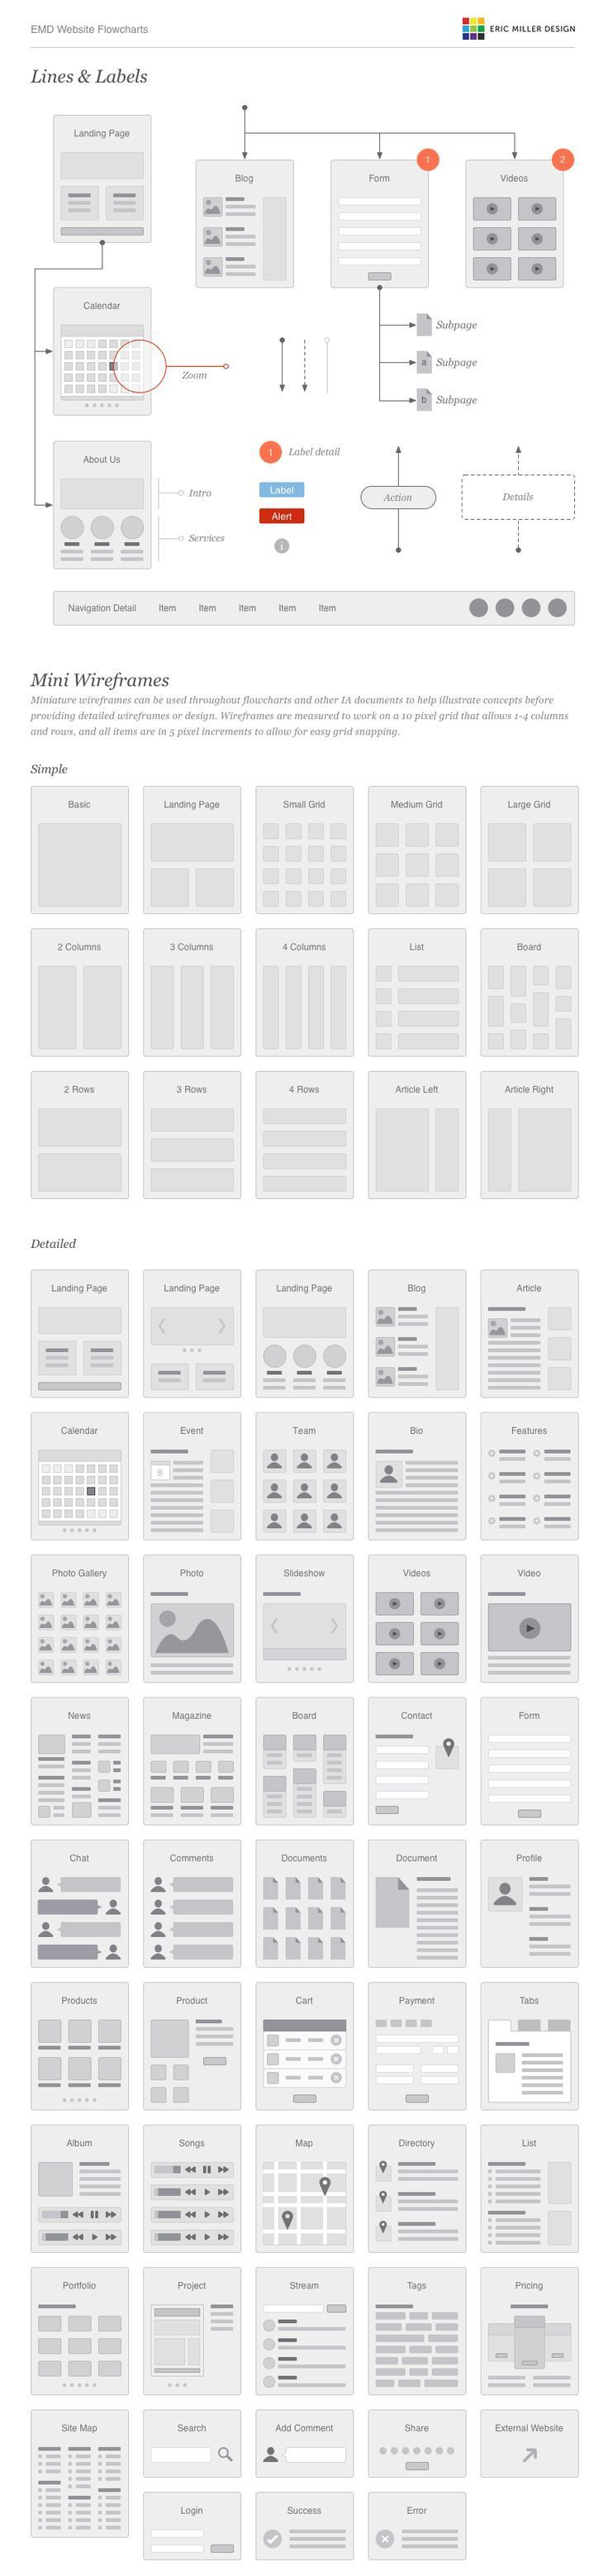 Flowcharts and Wireframes for designing Websites and Web Applications:. If you like UX, design, or design thinking, check out theuxblog.com